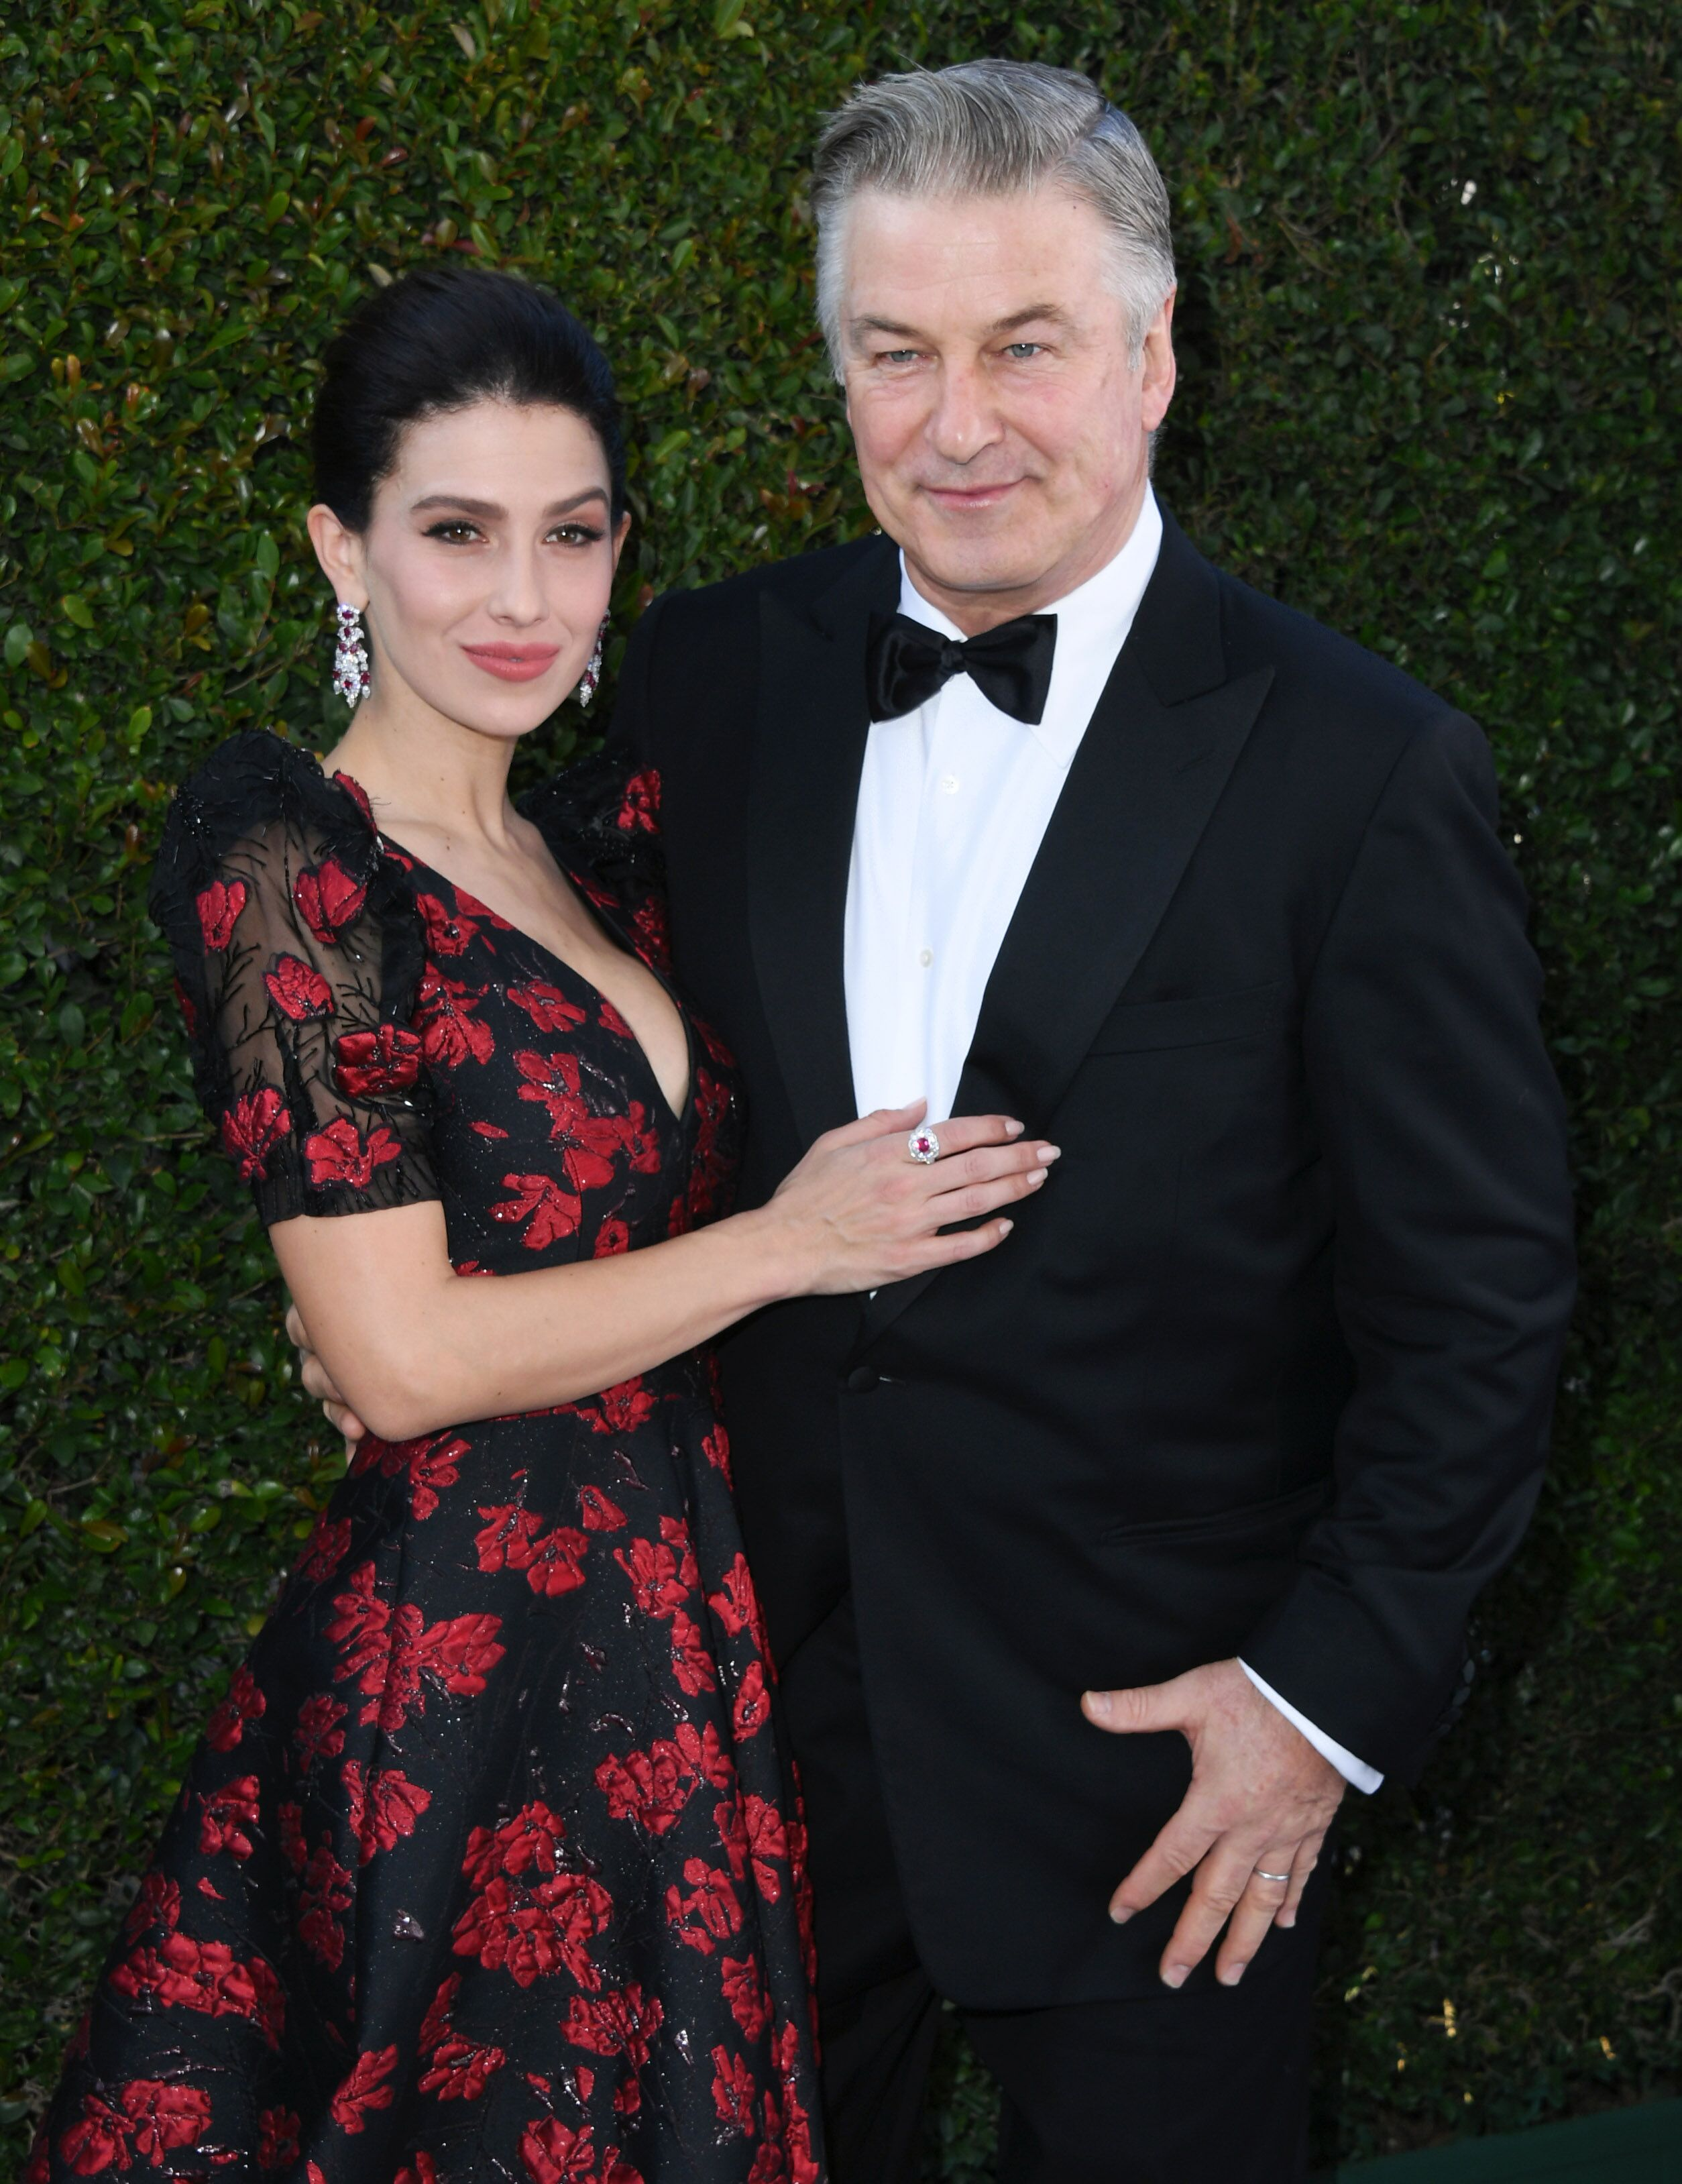 Hilaria Baldwin and Alec Baldwin at the 25th Annual Screen Actors Guild Awards on January 27, 2019. | Source: Getty Images